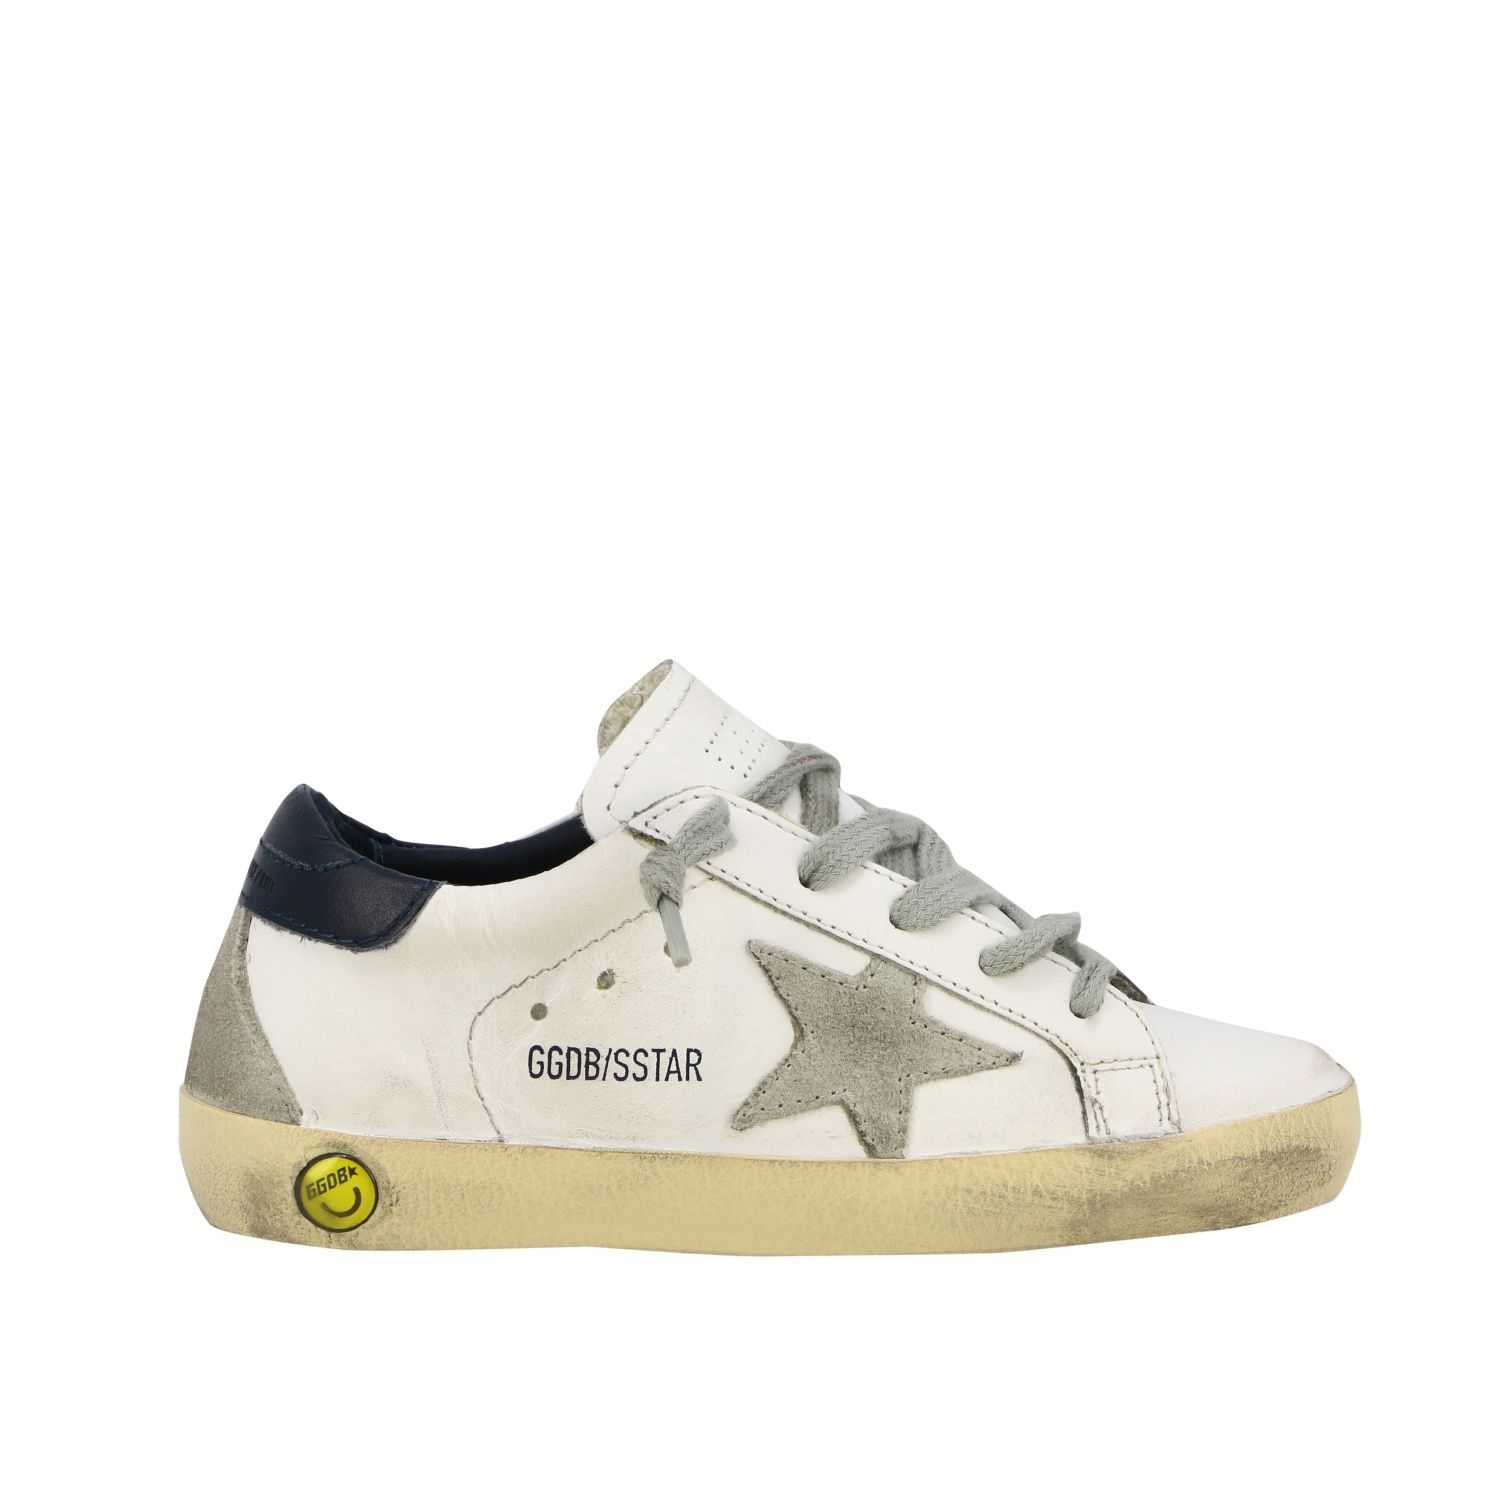 Superstar Golden Goose sneakers in leather and suede with star white 1